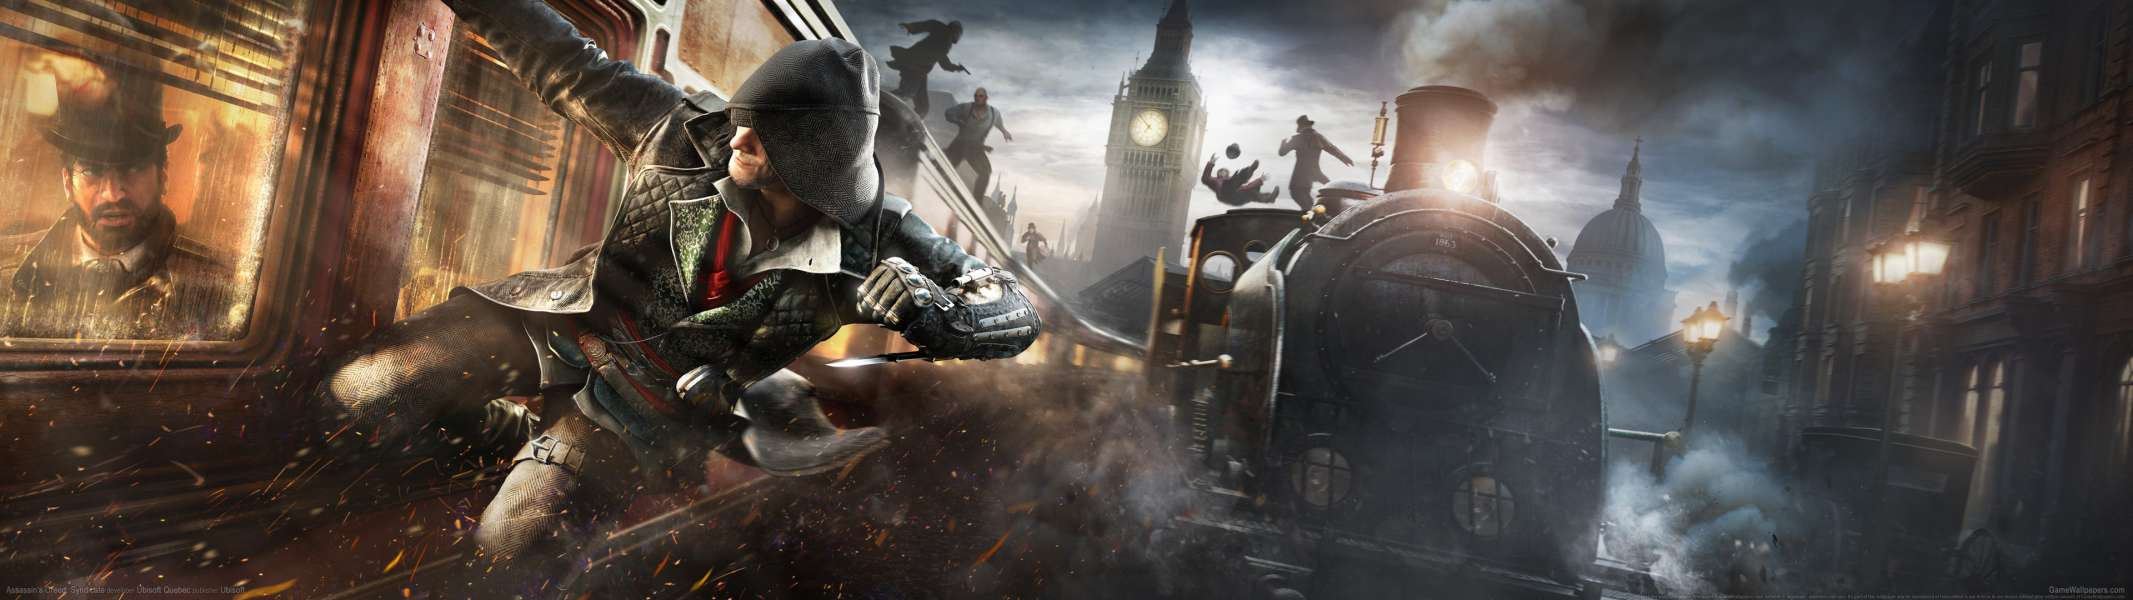 Assassin's Creed: Syndicate dual screen achtergrond